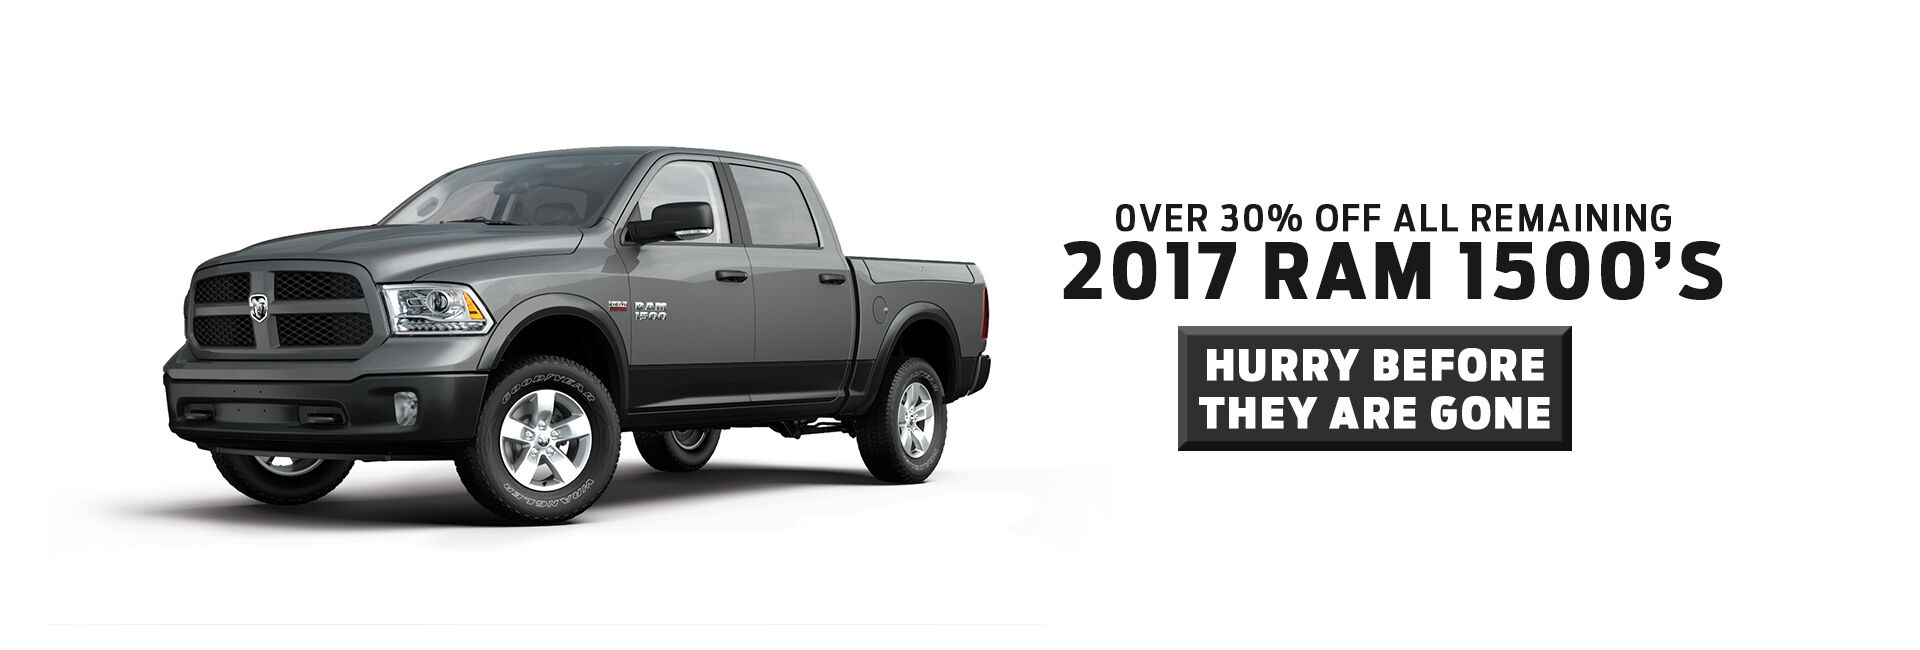 Incredible deals on all remaining 2017 Ram Trucks